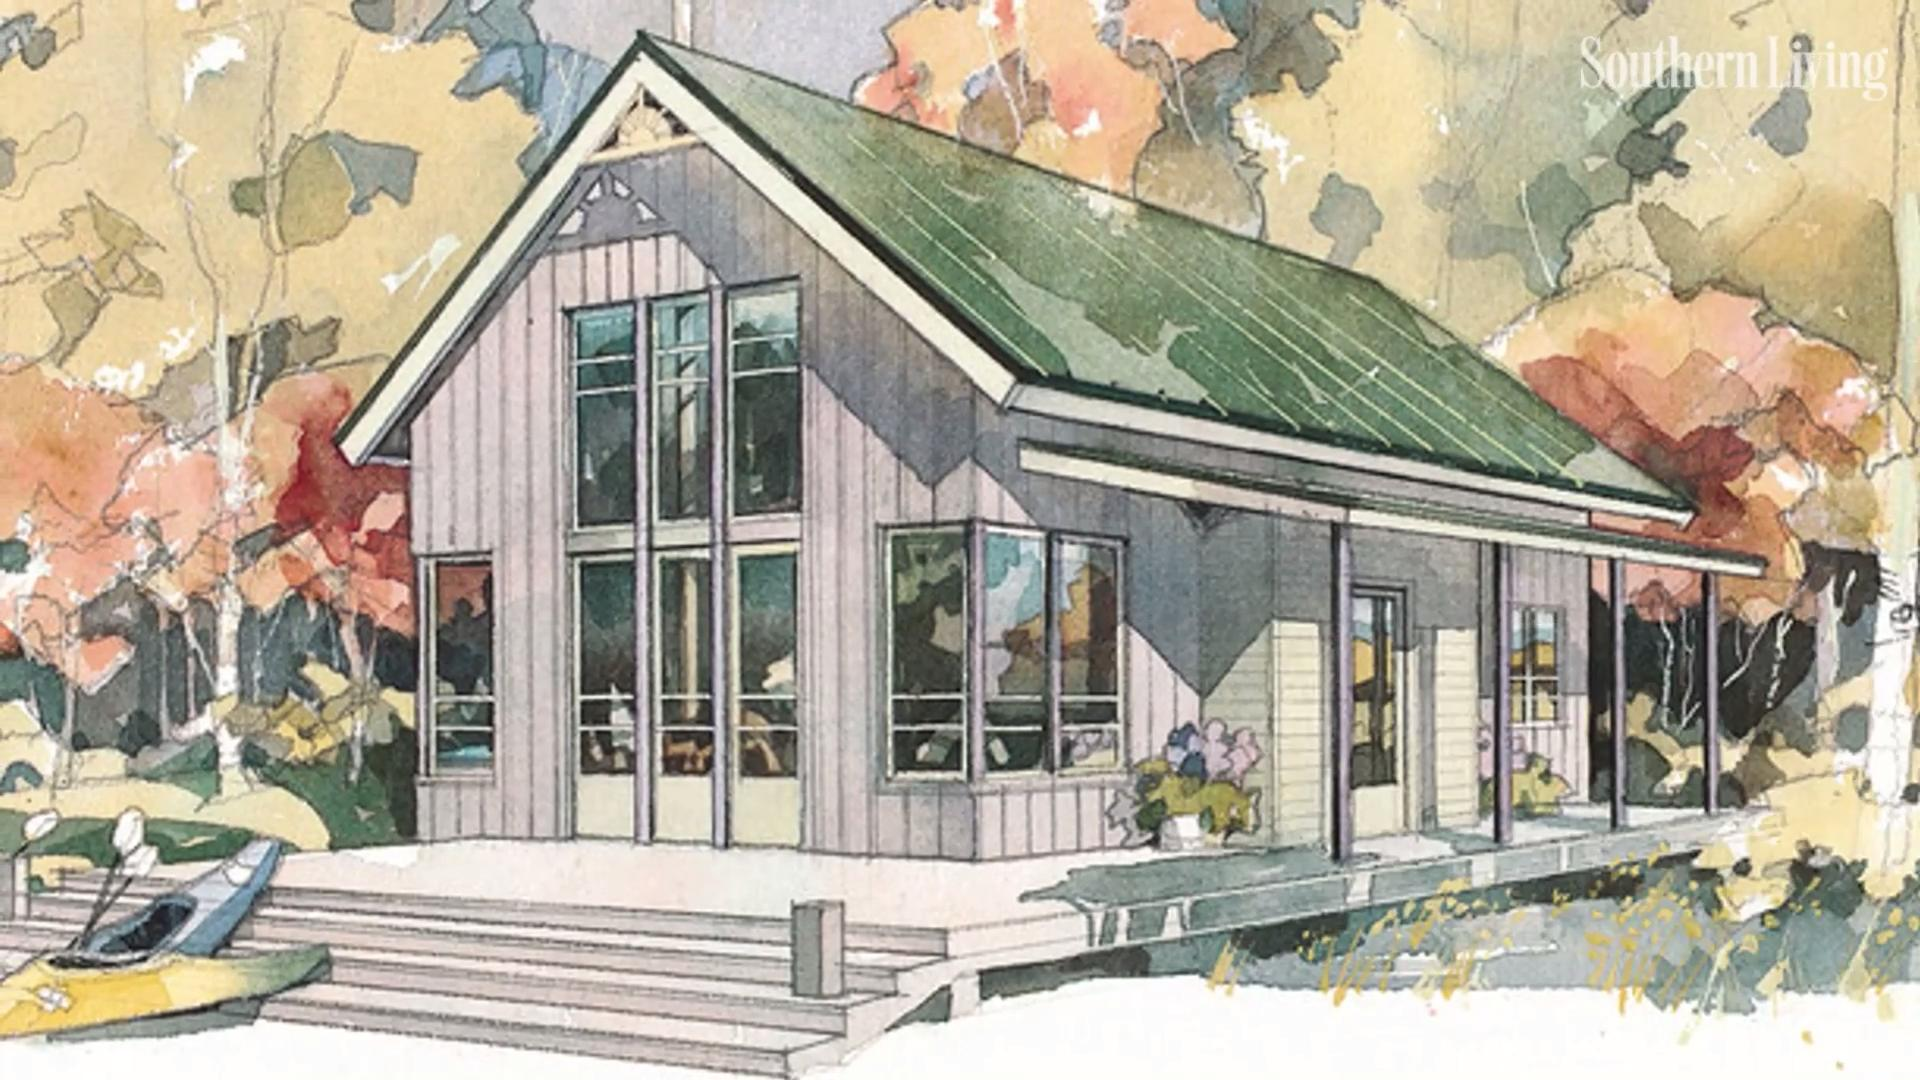 Why We Love House Plan 2003 | Southern Living